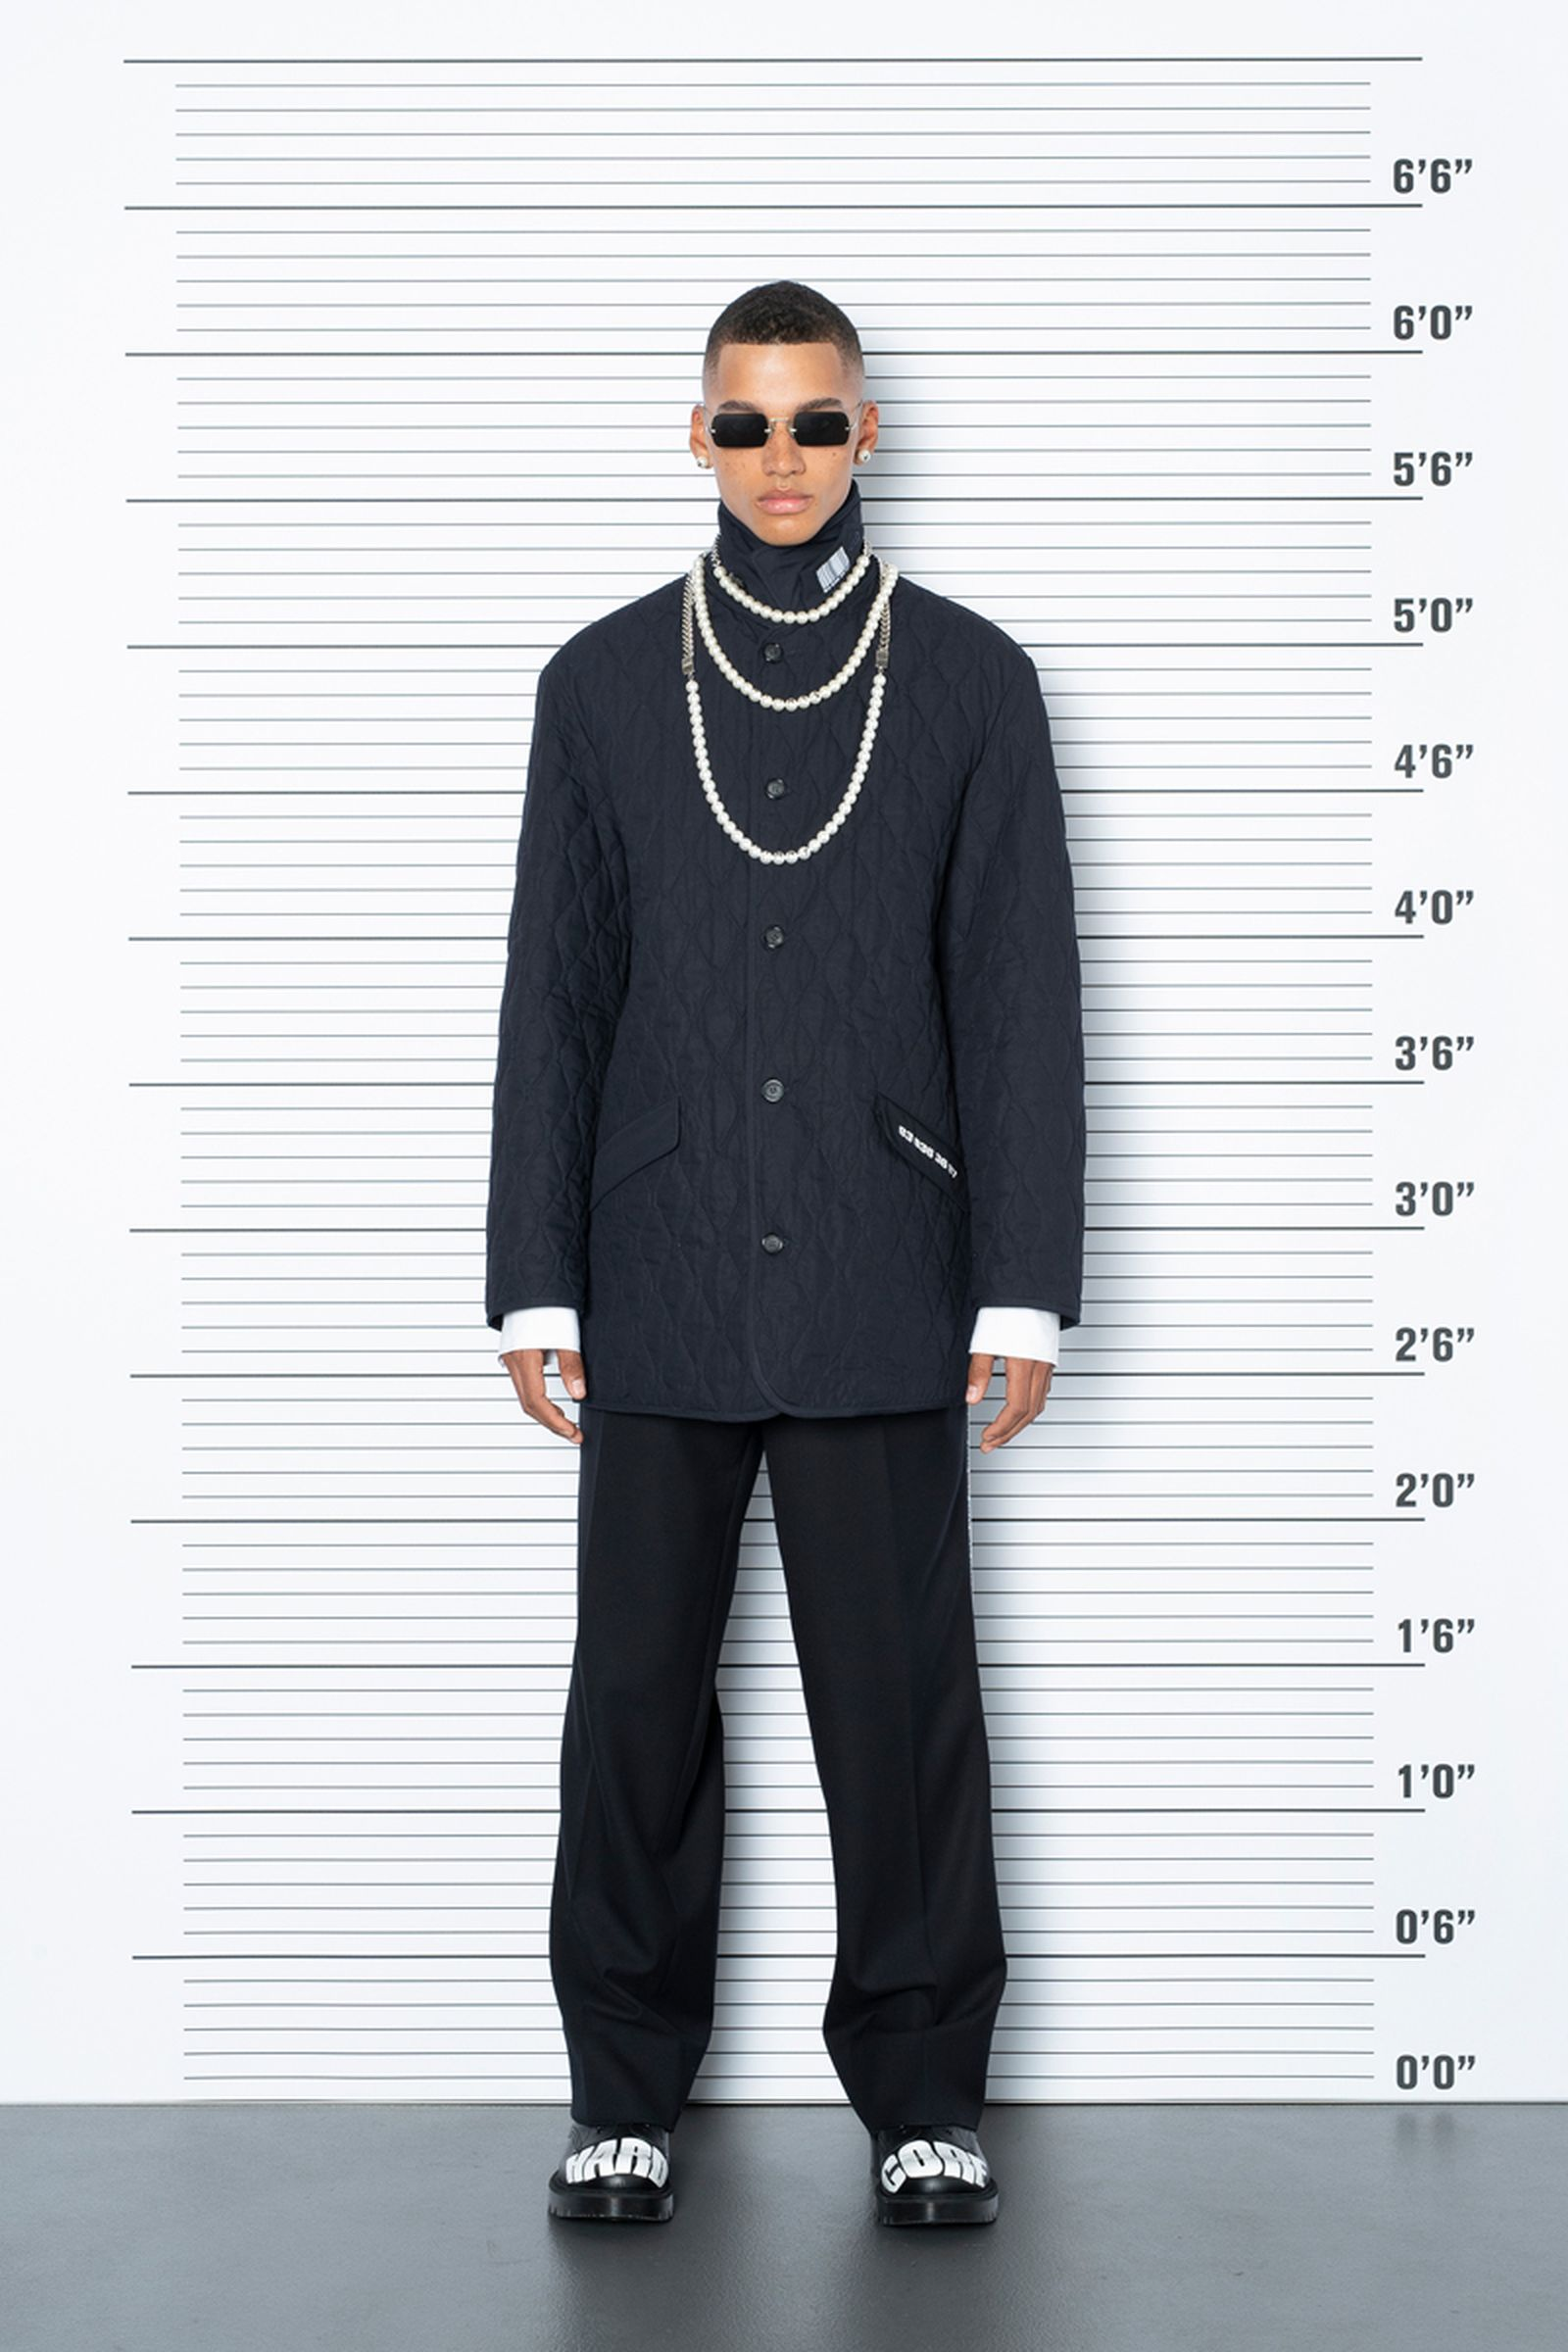 vetements-vtmnts-ss22-collection-lookbook- (13)